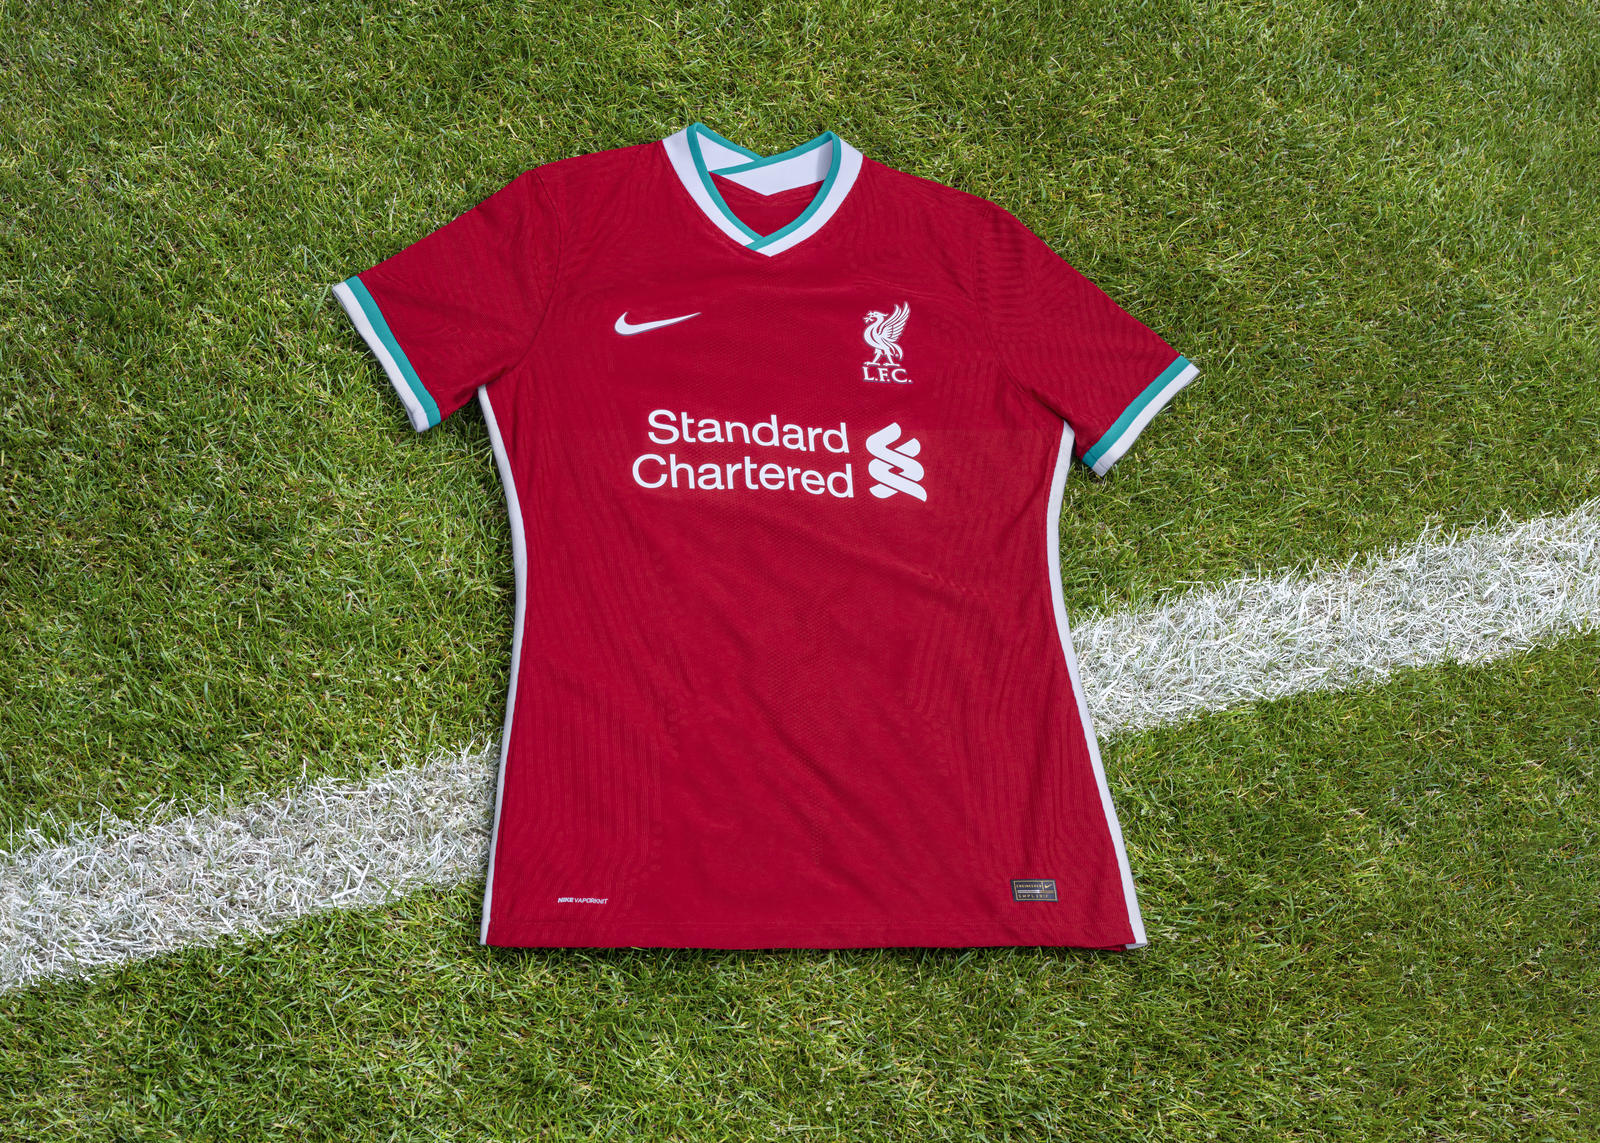 liverpool football club 2020 21 home kit nike news liverpool football club 2020 21 home